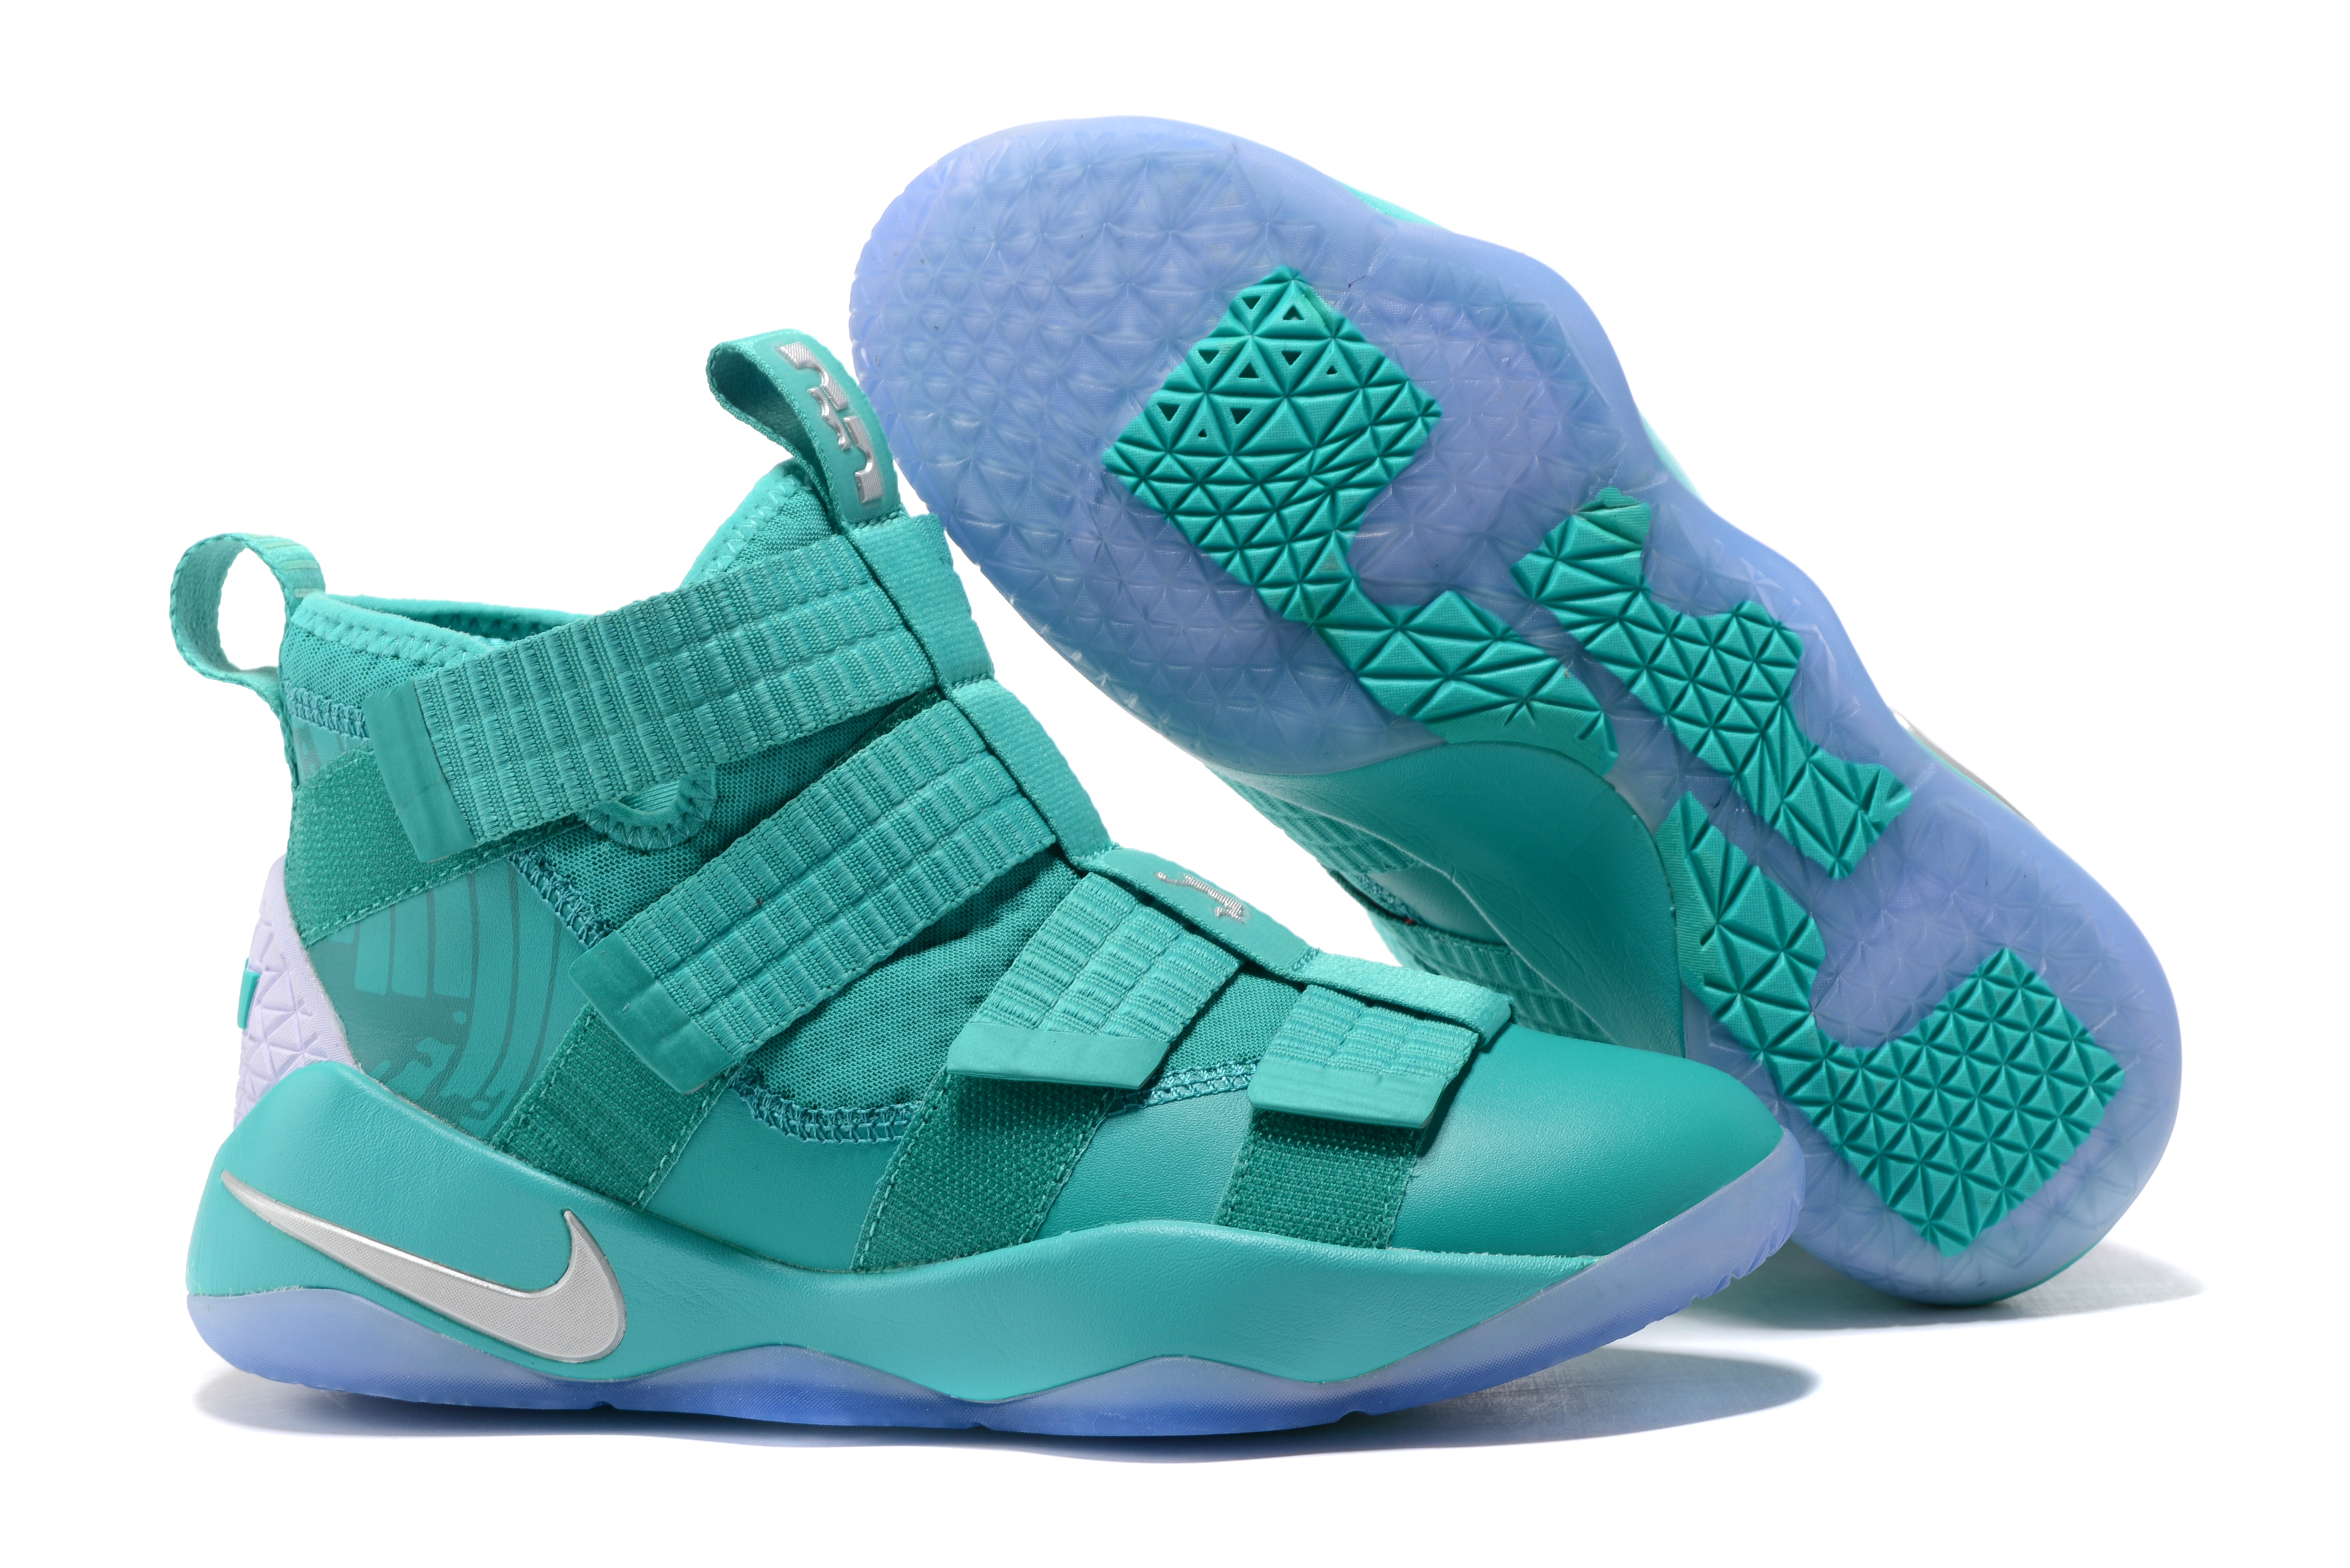 New Nike Lebron Soldier 11 Gint Green Shoes